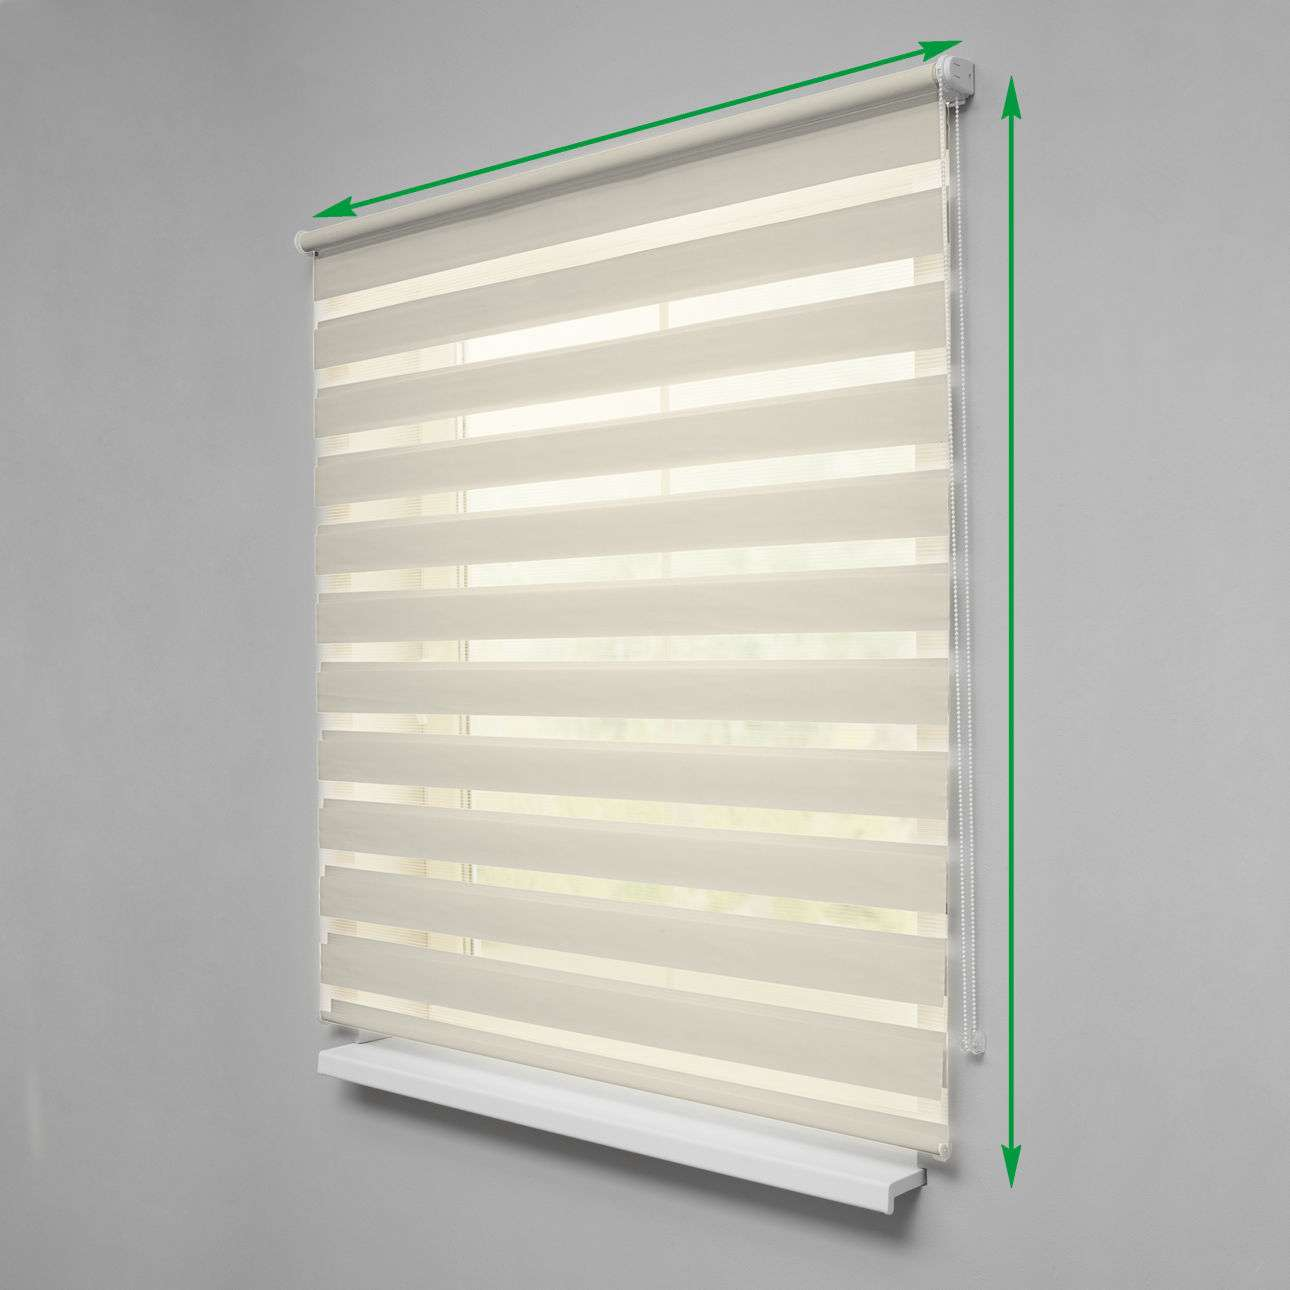 Day & Night Roller Blind in collection Roller blinds Day & Night (Venetian blind), fabric: 0105